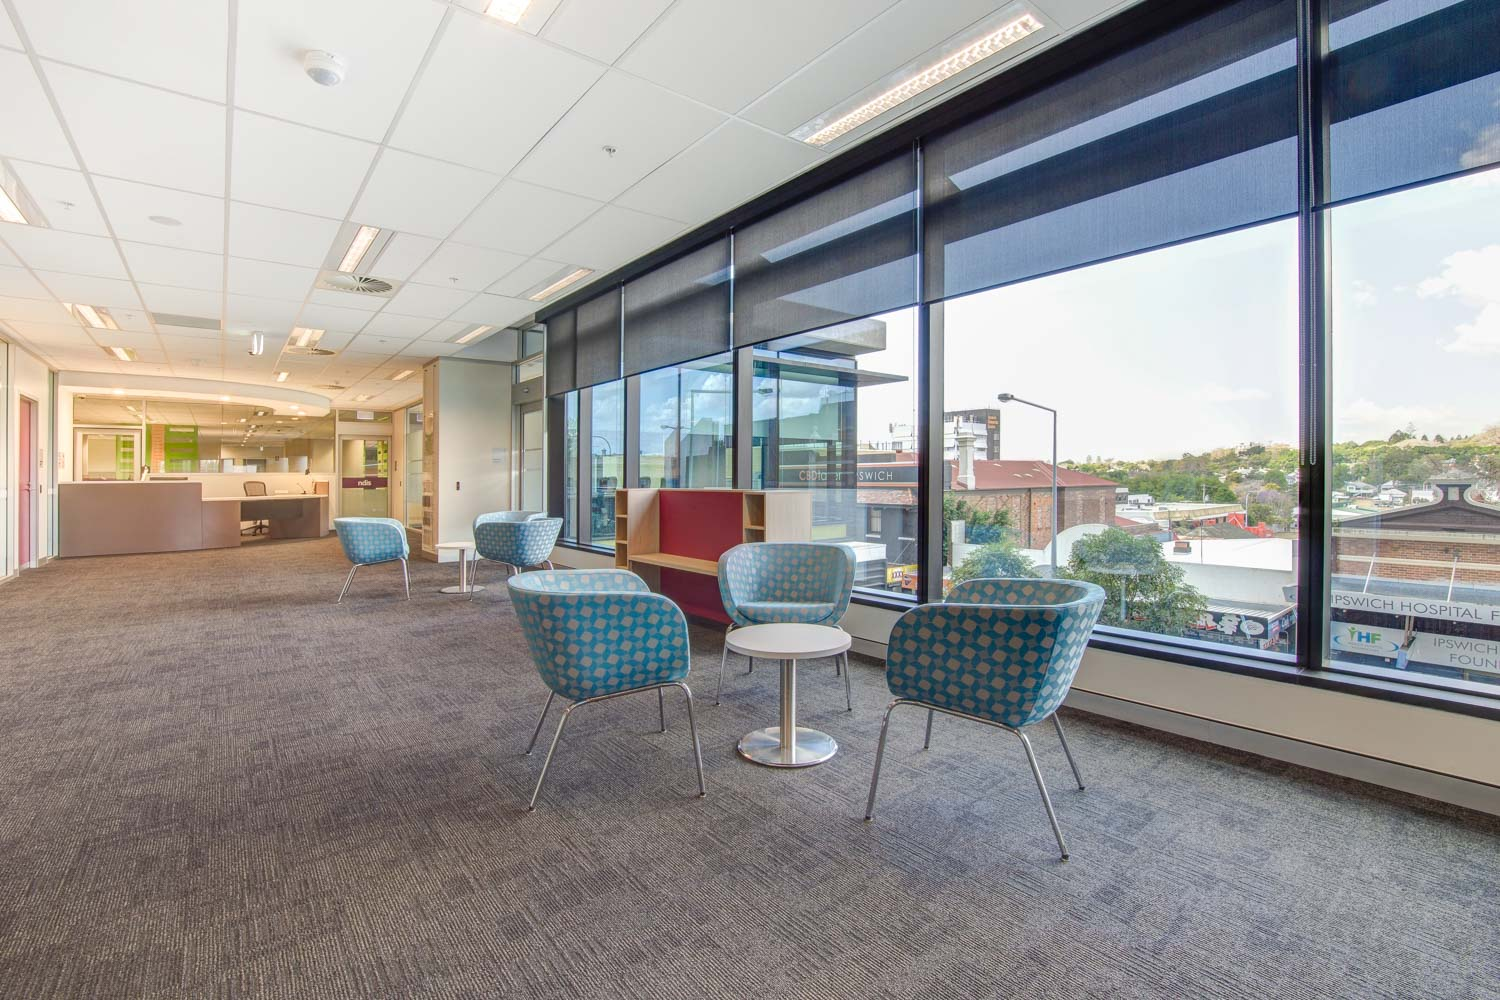 NDIS Ipswich - Fitout completed by Formula Interiors